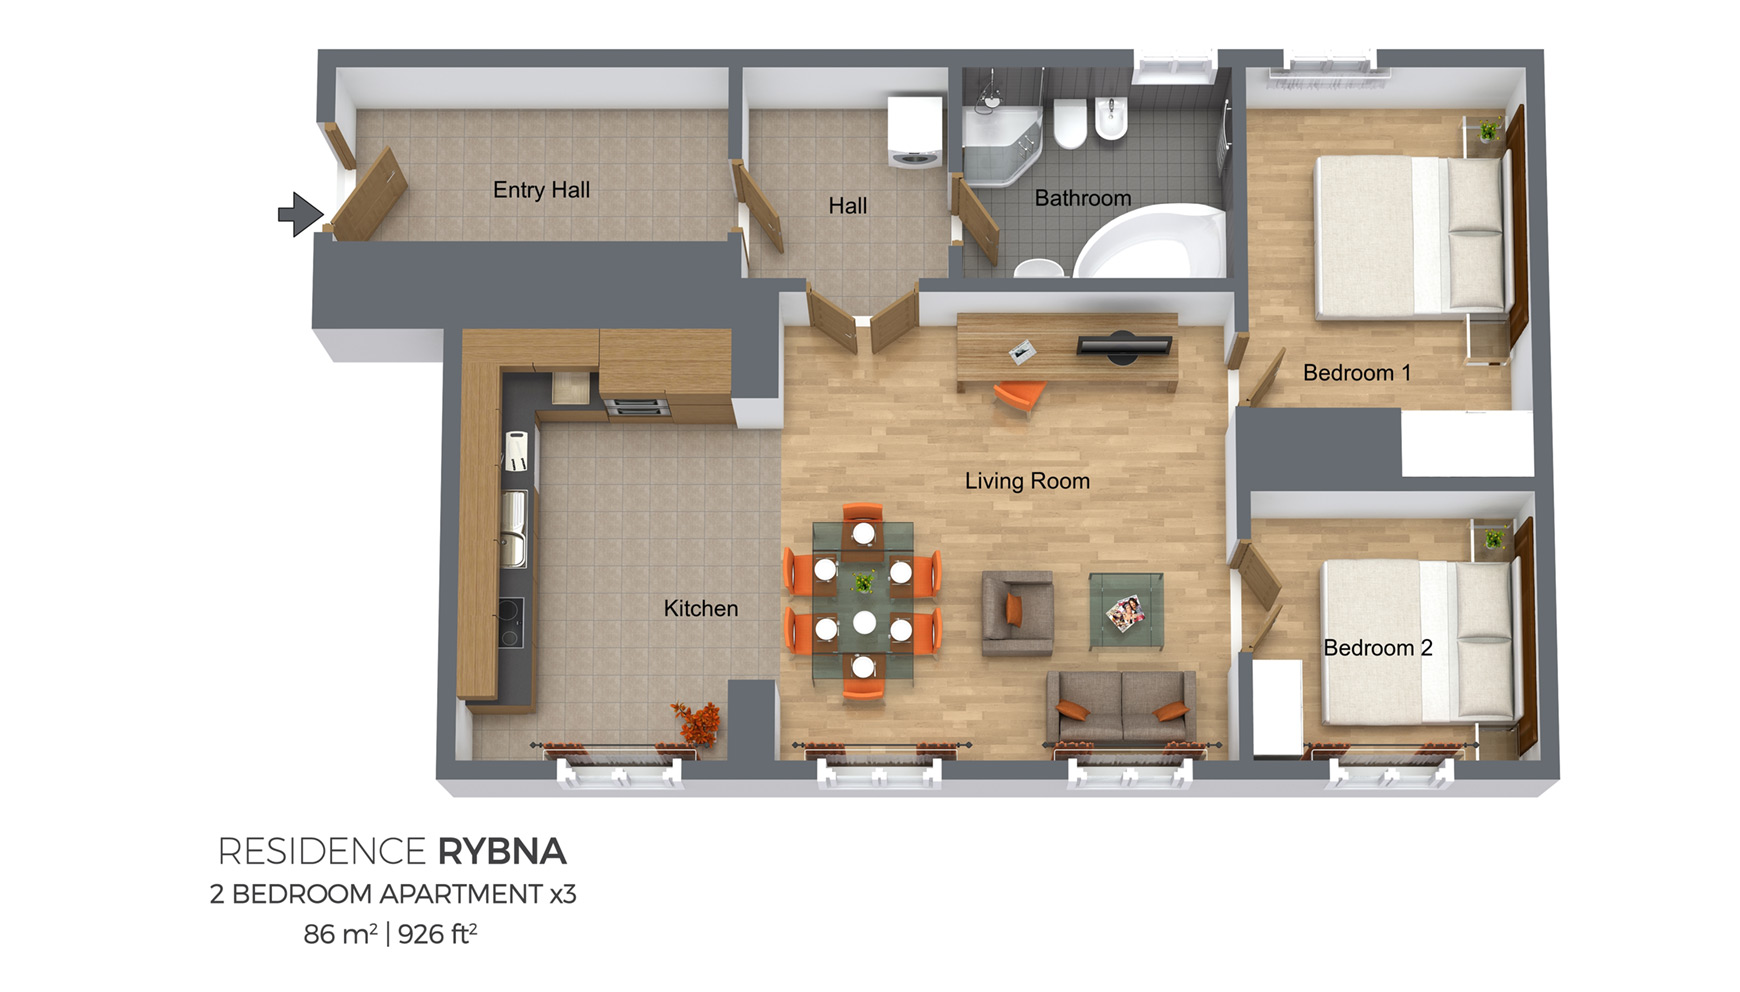 Two Bedroom Apartment Type 3 | Residence Rybna